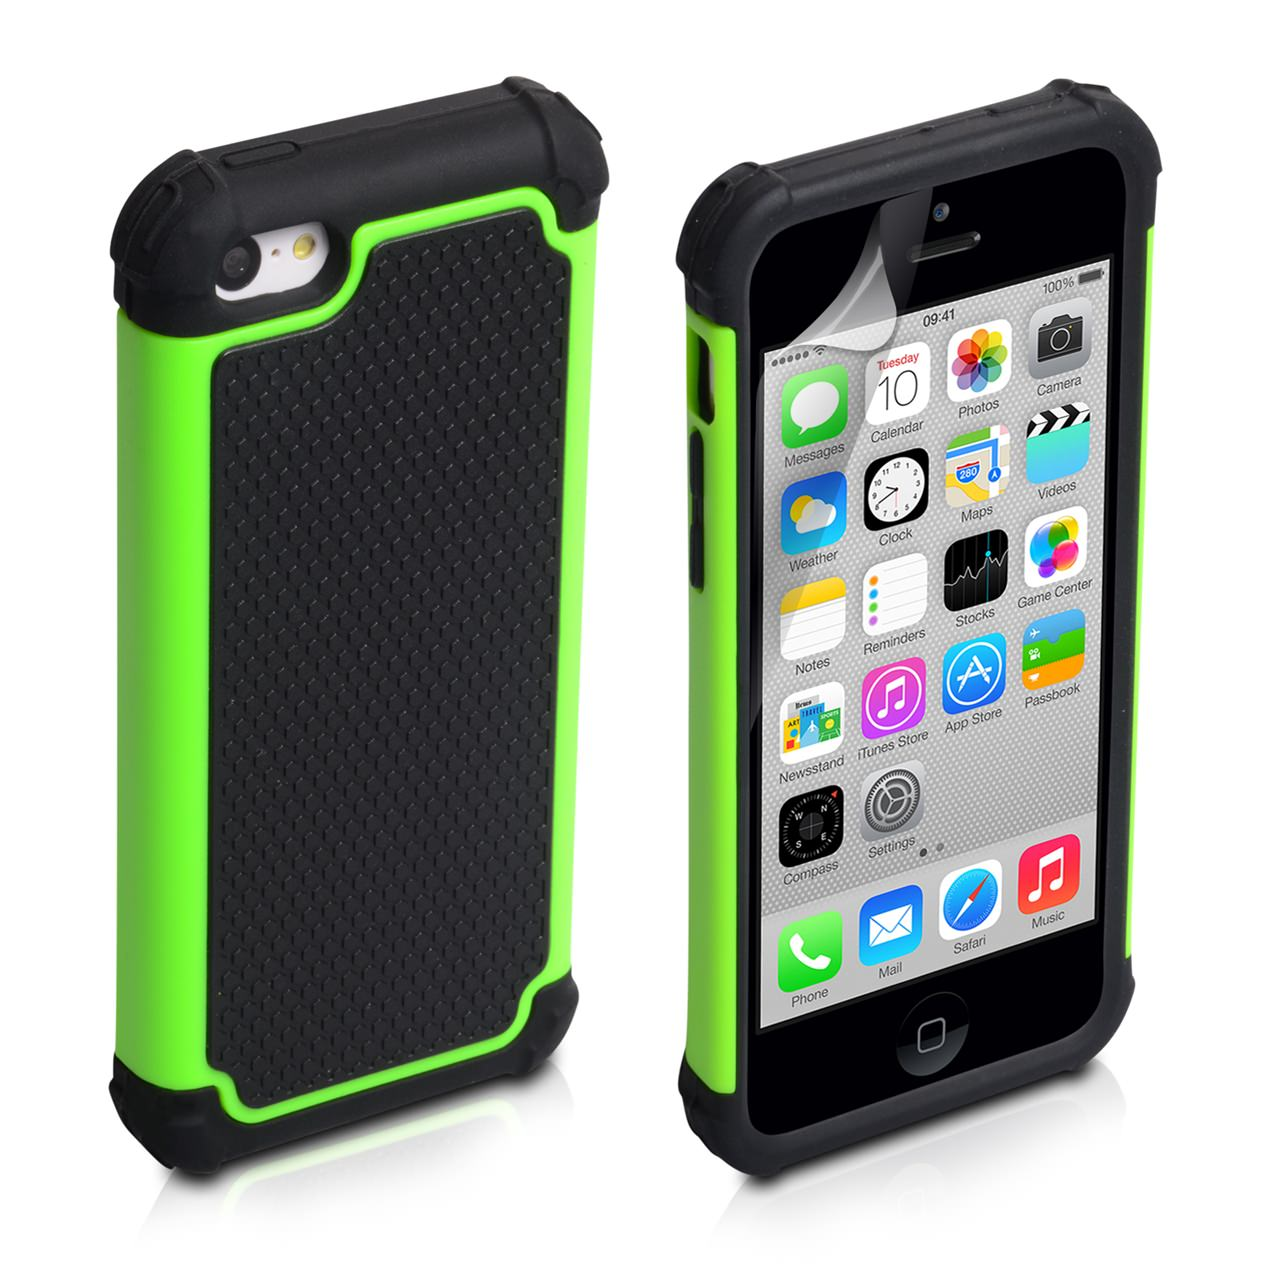 YouSave Accessories iPhone 5C Grip Combo Case - Green